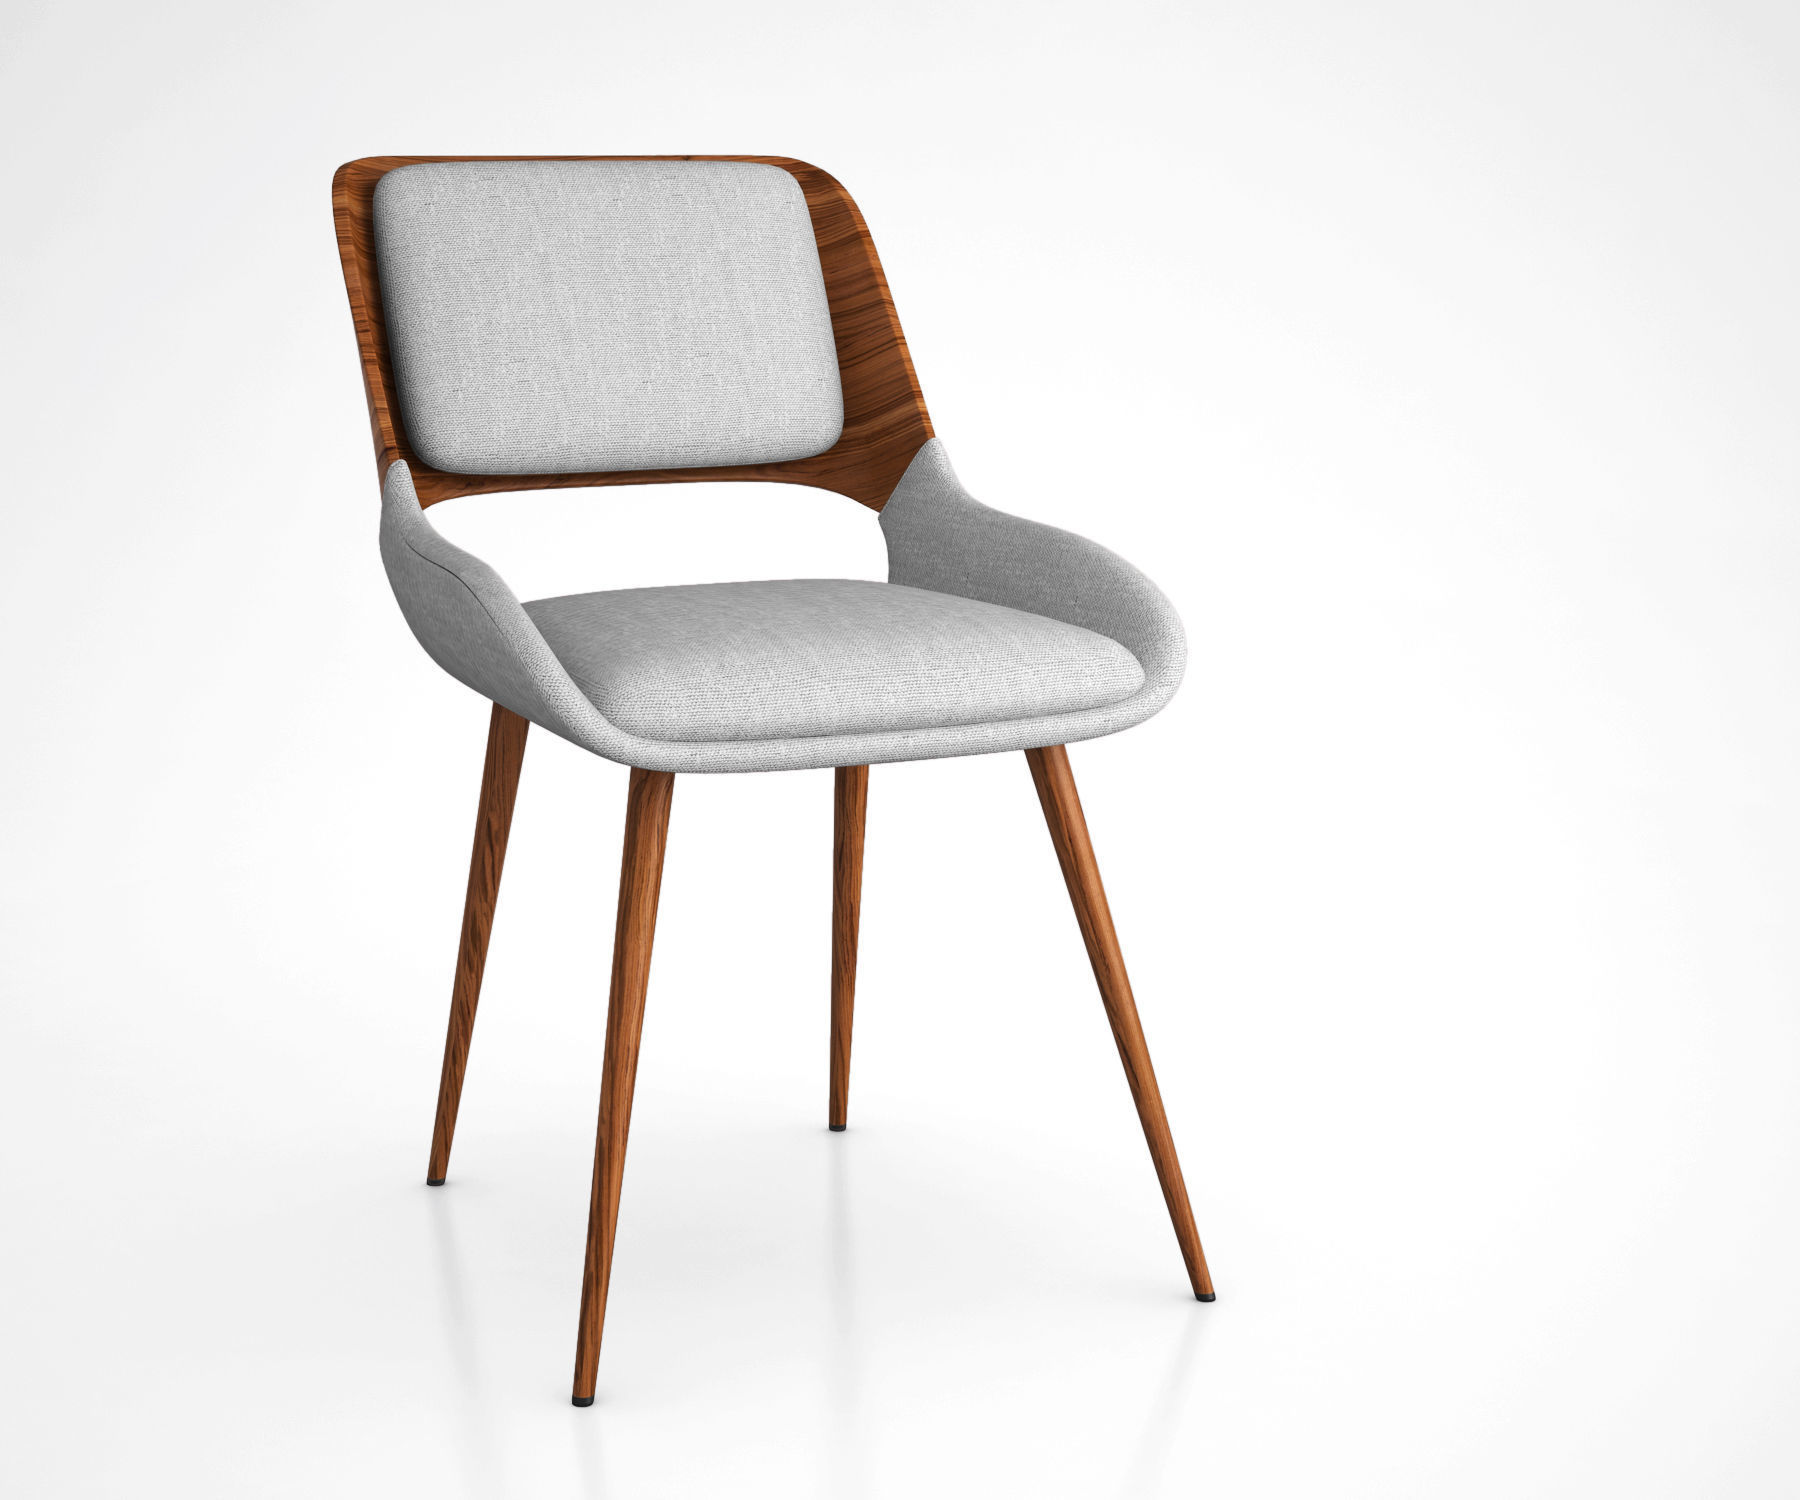 Panda Mid-Century Dining Chair in Walnut Wood and Gray Fabric